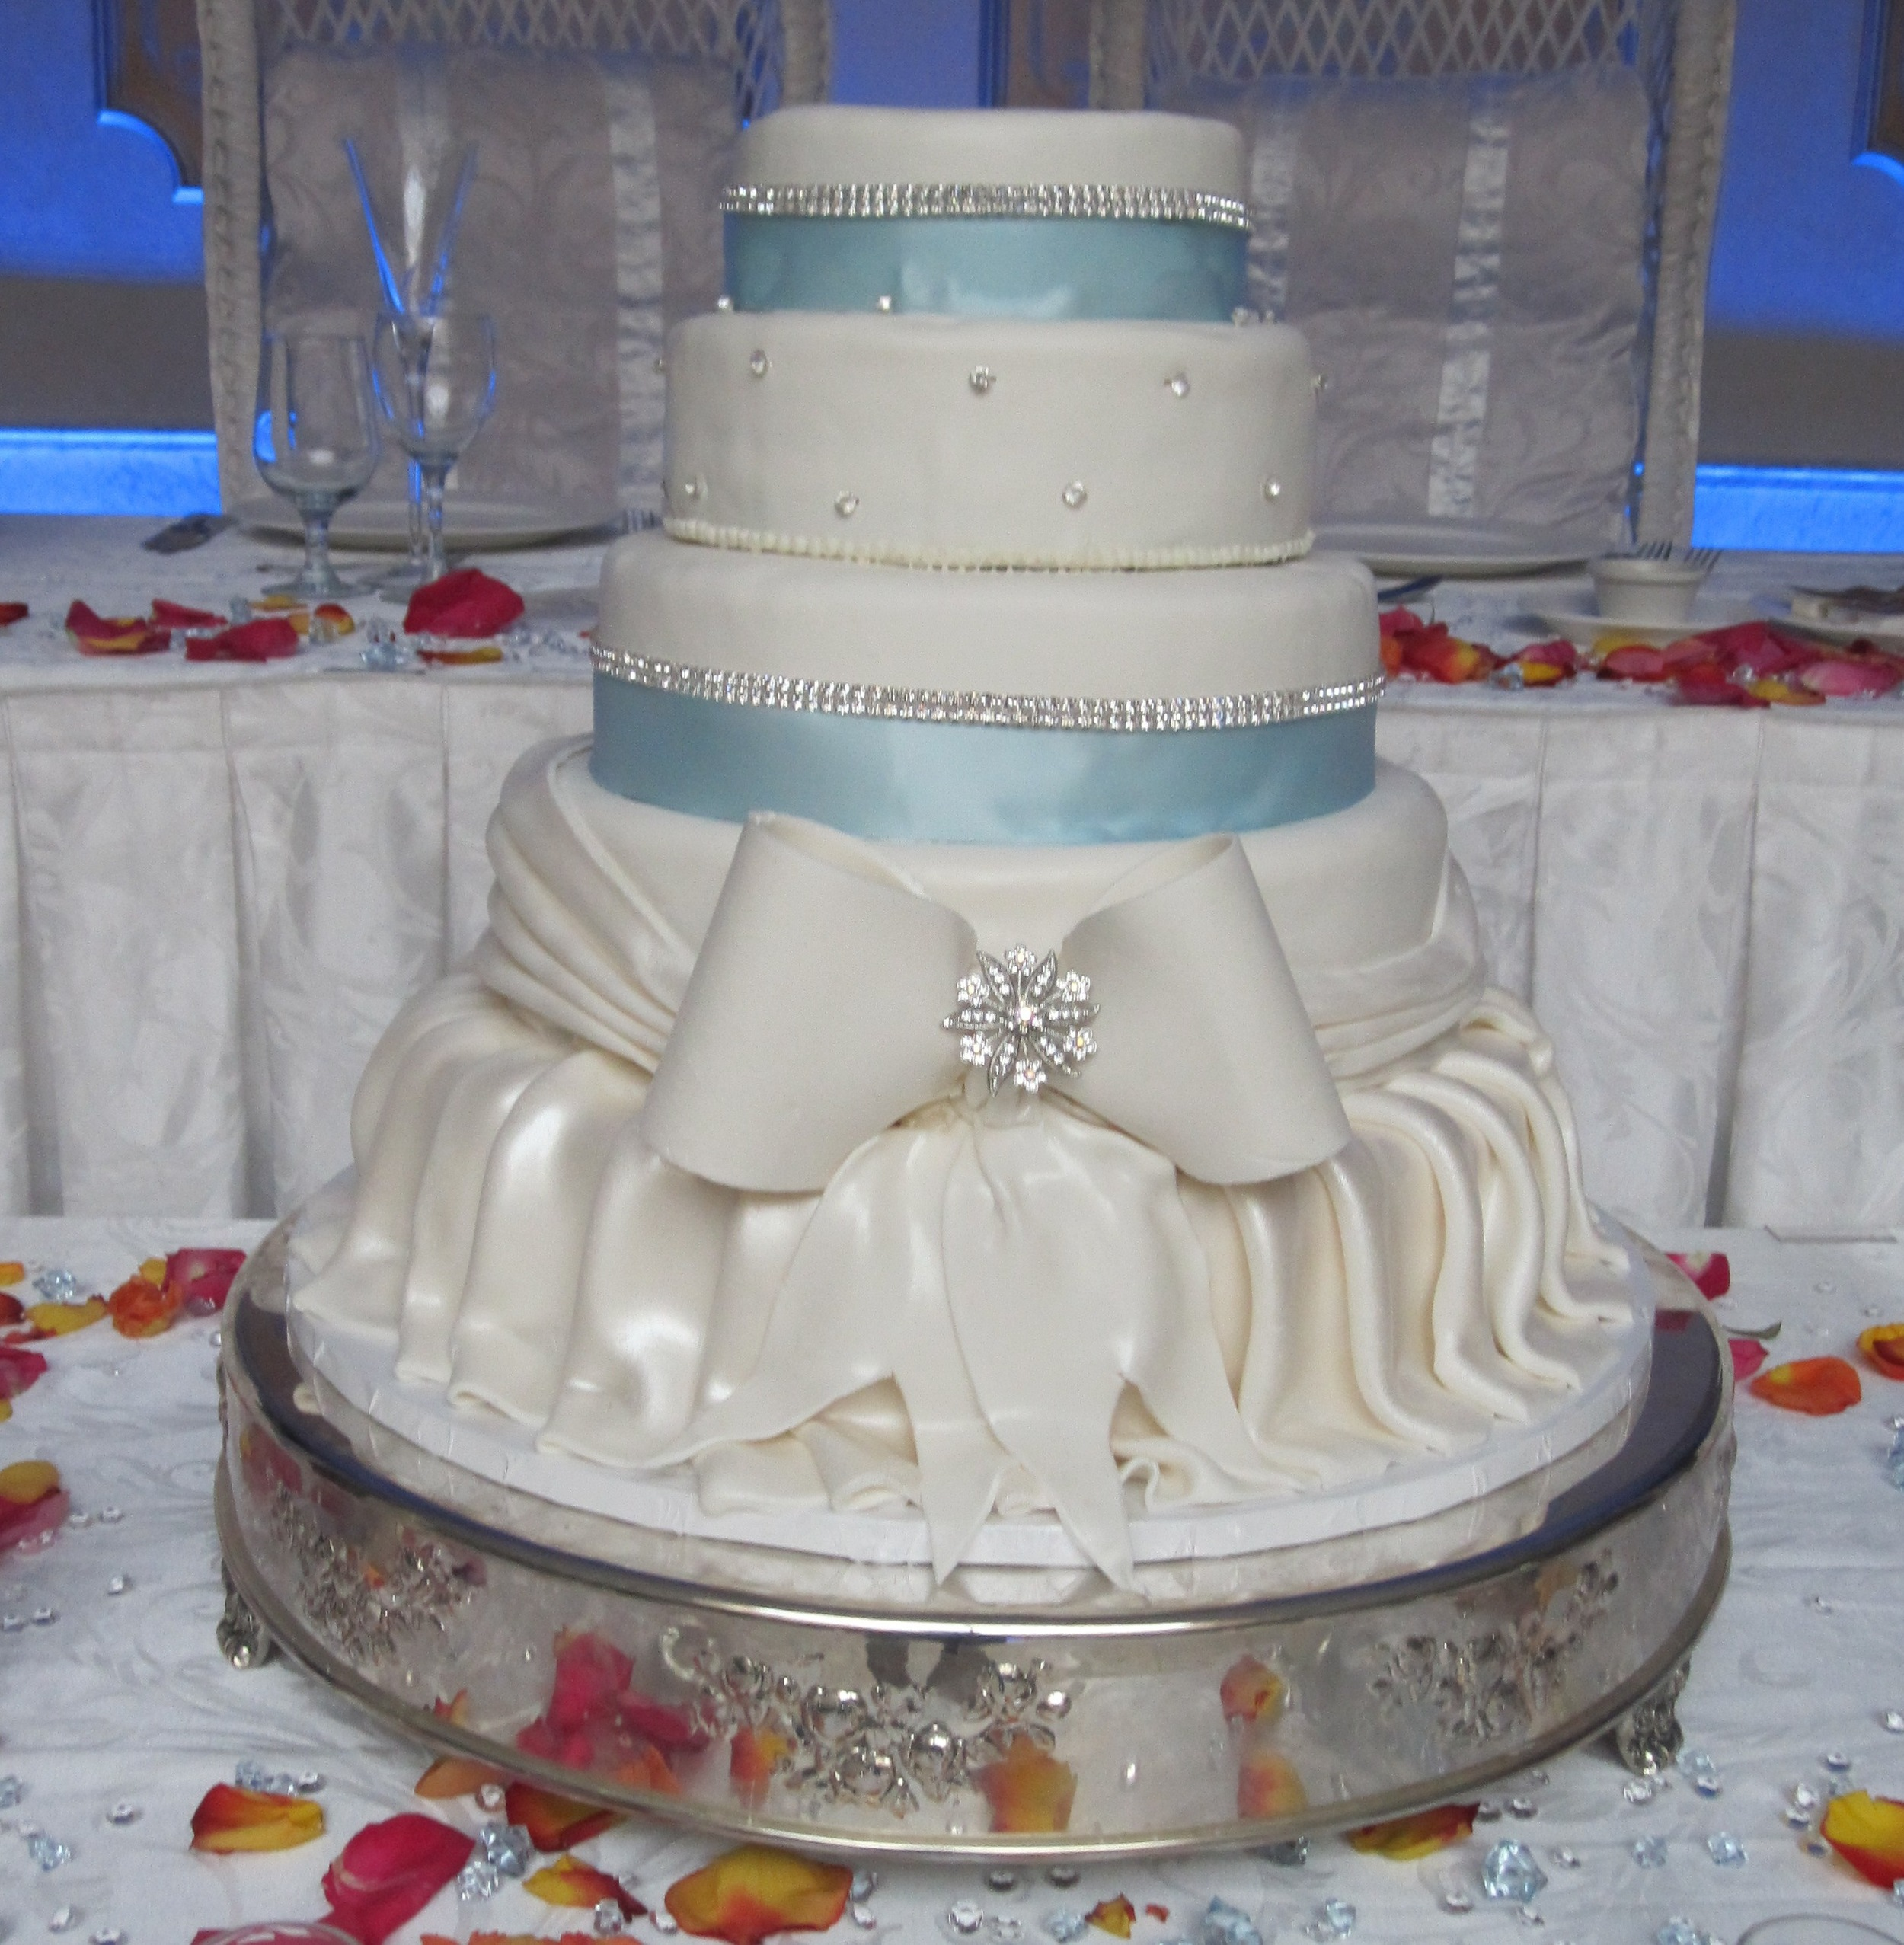 45 with Wrapped Rolled Fondant & Extra Large Bow. Material Ribbon & Crystals